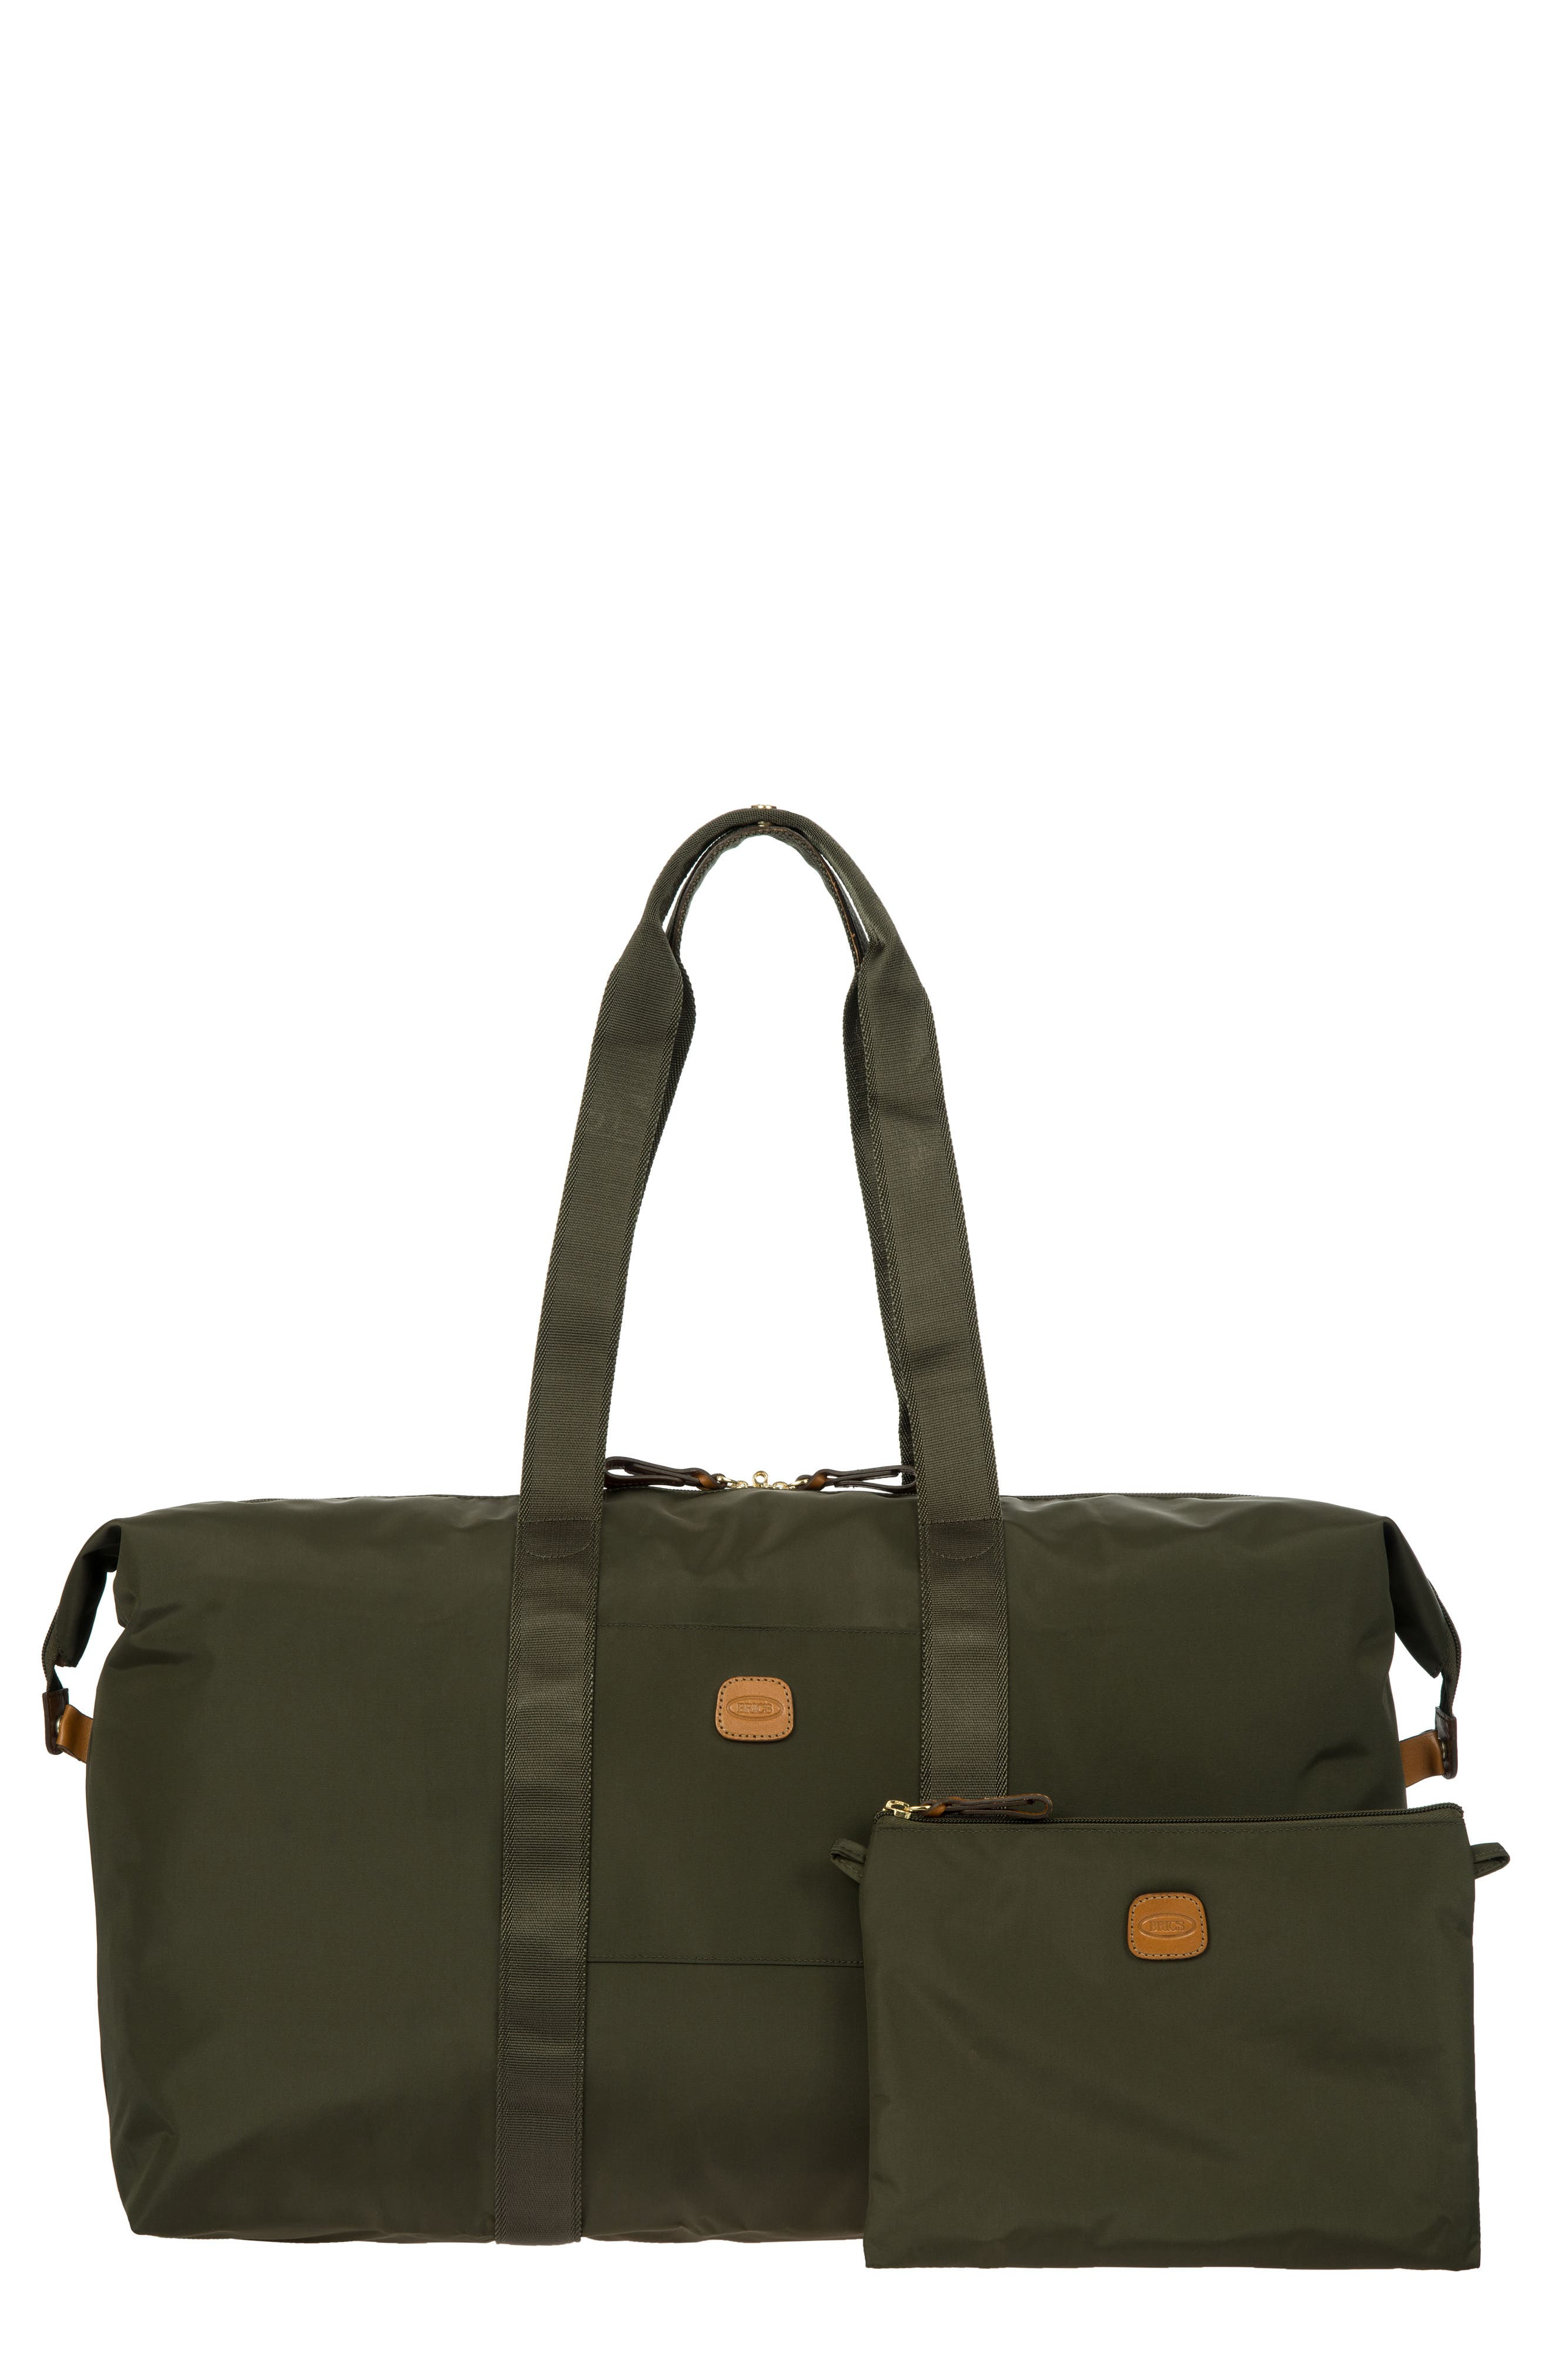 X-Bag 22-Inch Folding Duffel Bag,                             Alternate thumbnail 4, color,                             Olive